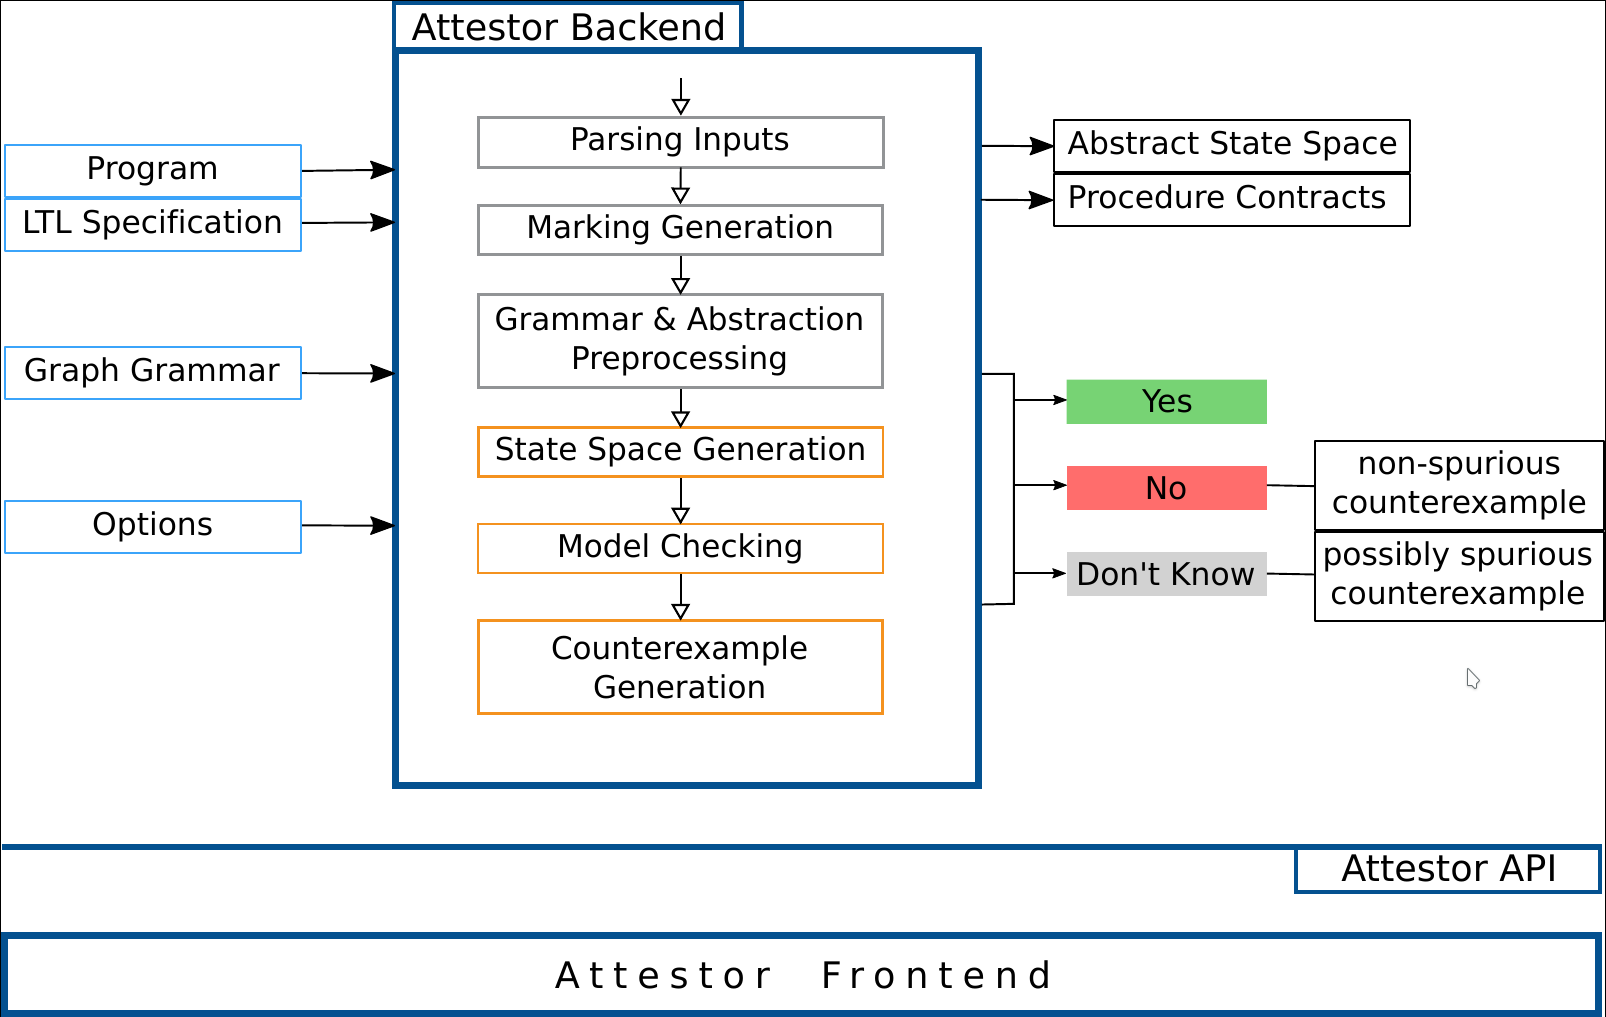 Overview of Attestor's architecture